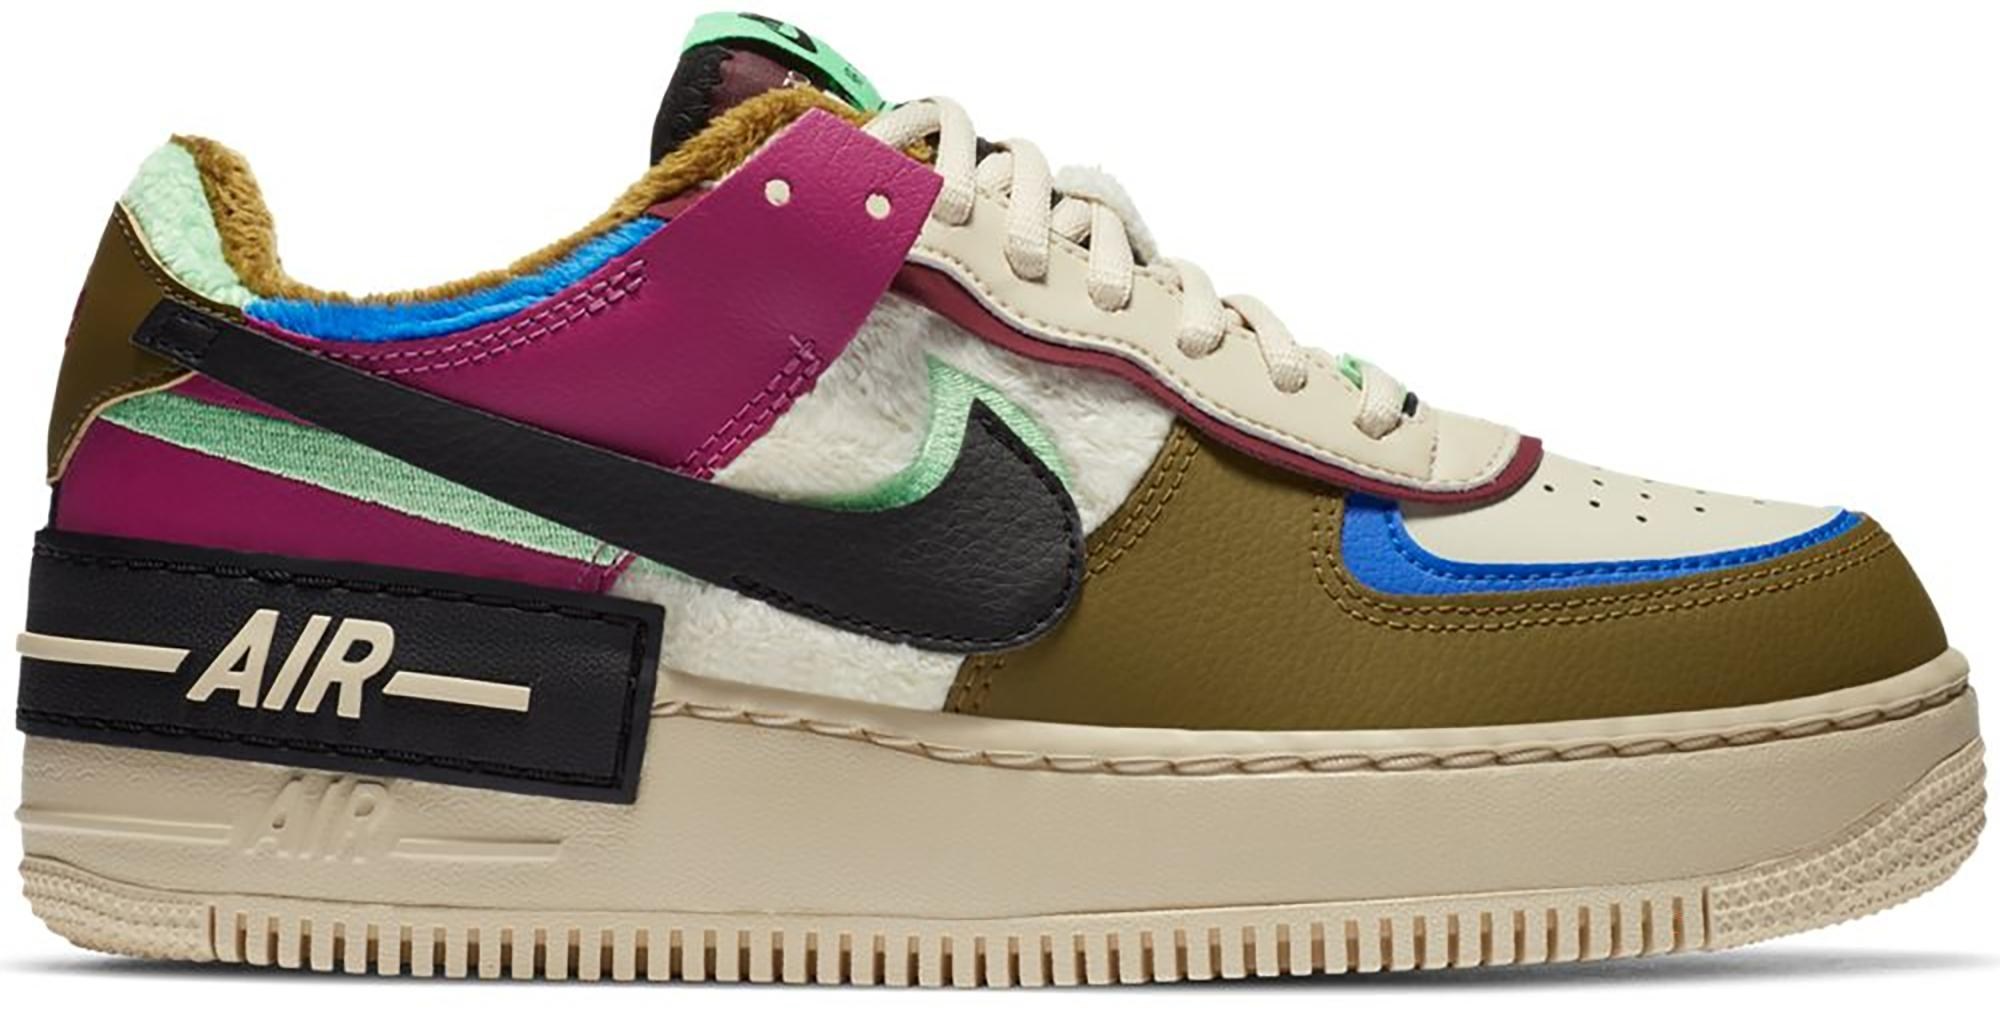 Nike Air Force 1 Shadow Cactus Flower Olive Flak W Lyst Nike's most iconic and enduring silo, the air force 1 is a street legend! lyst